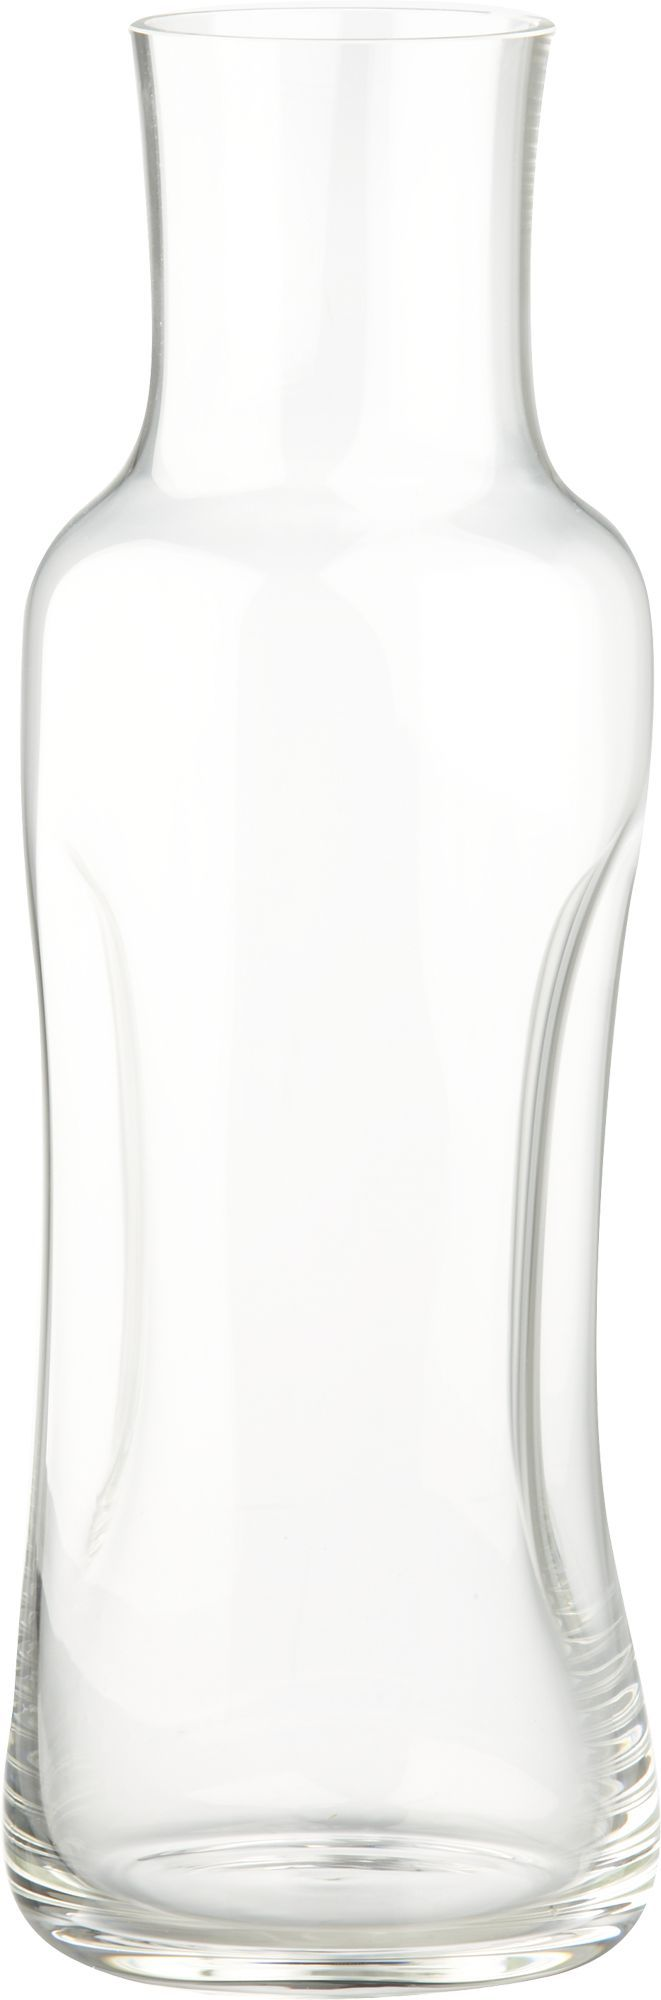 Subtly pinched contour makes an impression on slim, modern carafe, ergonomically shaped for an effortless, perfect pour of wine, water, juice and other cold beverages. Each decanter is handmade of specially formulated glass, known for its resilience and brilliance, by master glassworkers at one of Slovakia's oldest glass factories. HandcraftedGlassDishwasher safe; hand washing recommendedNot intended for hot liquidsMade in Slovakia.